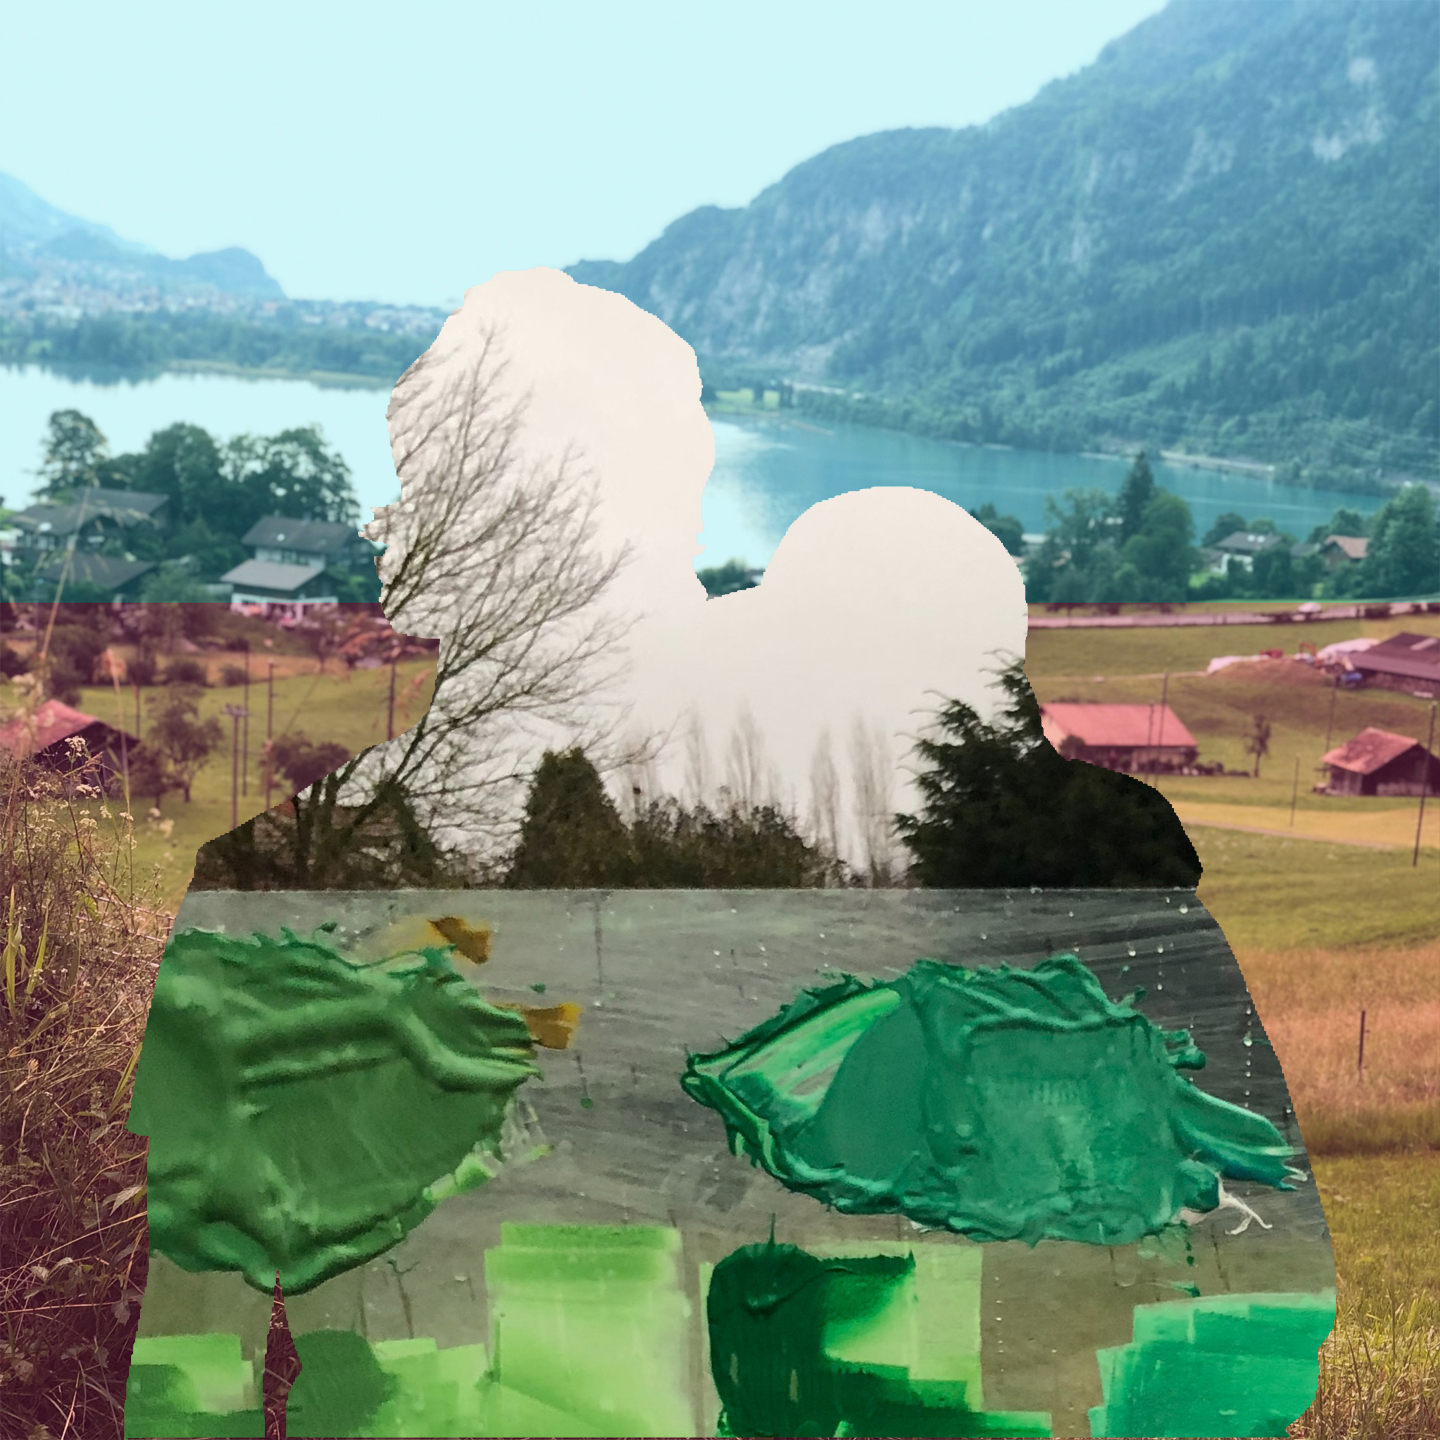 The Green Places I've Lived,  Digital Collage, 2019